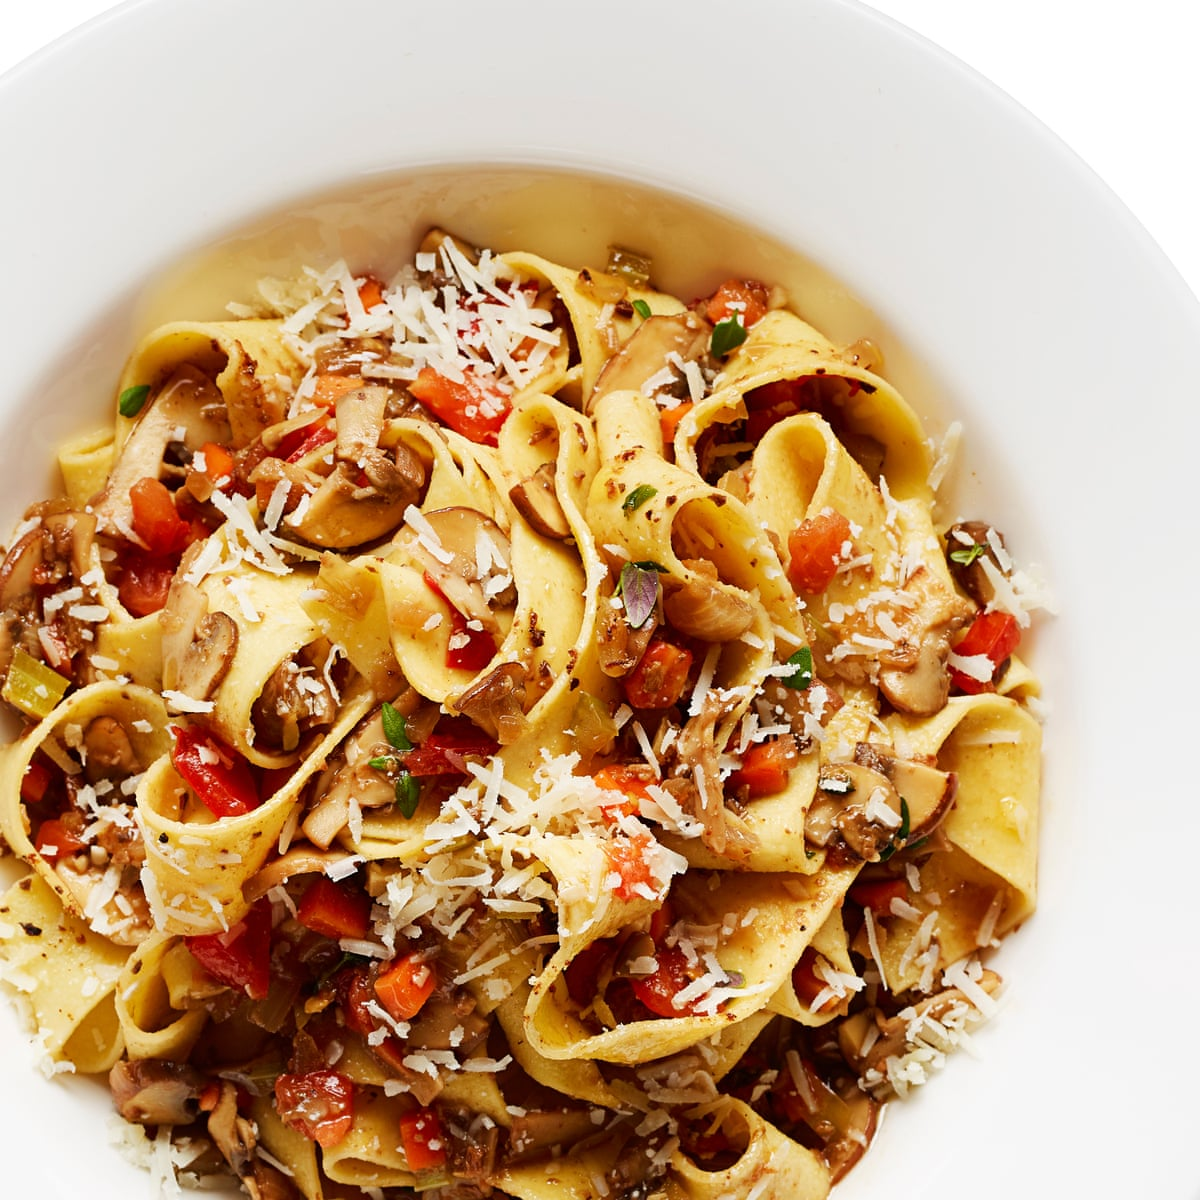 Ricetta In Italian To English.How To Make The Perfect Pasta Ai Funghi Recipe Food The Guardian